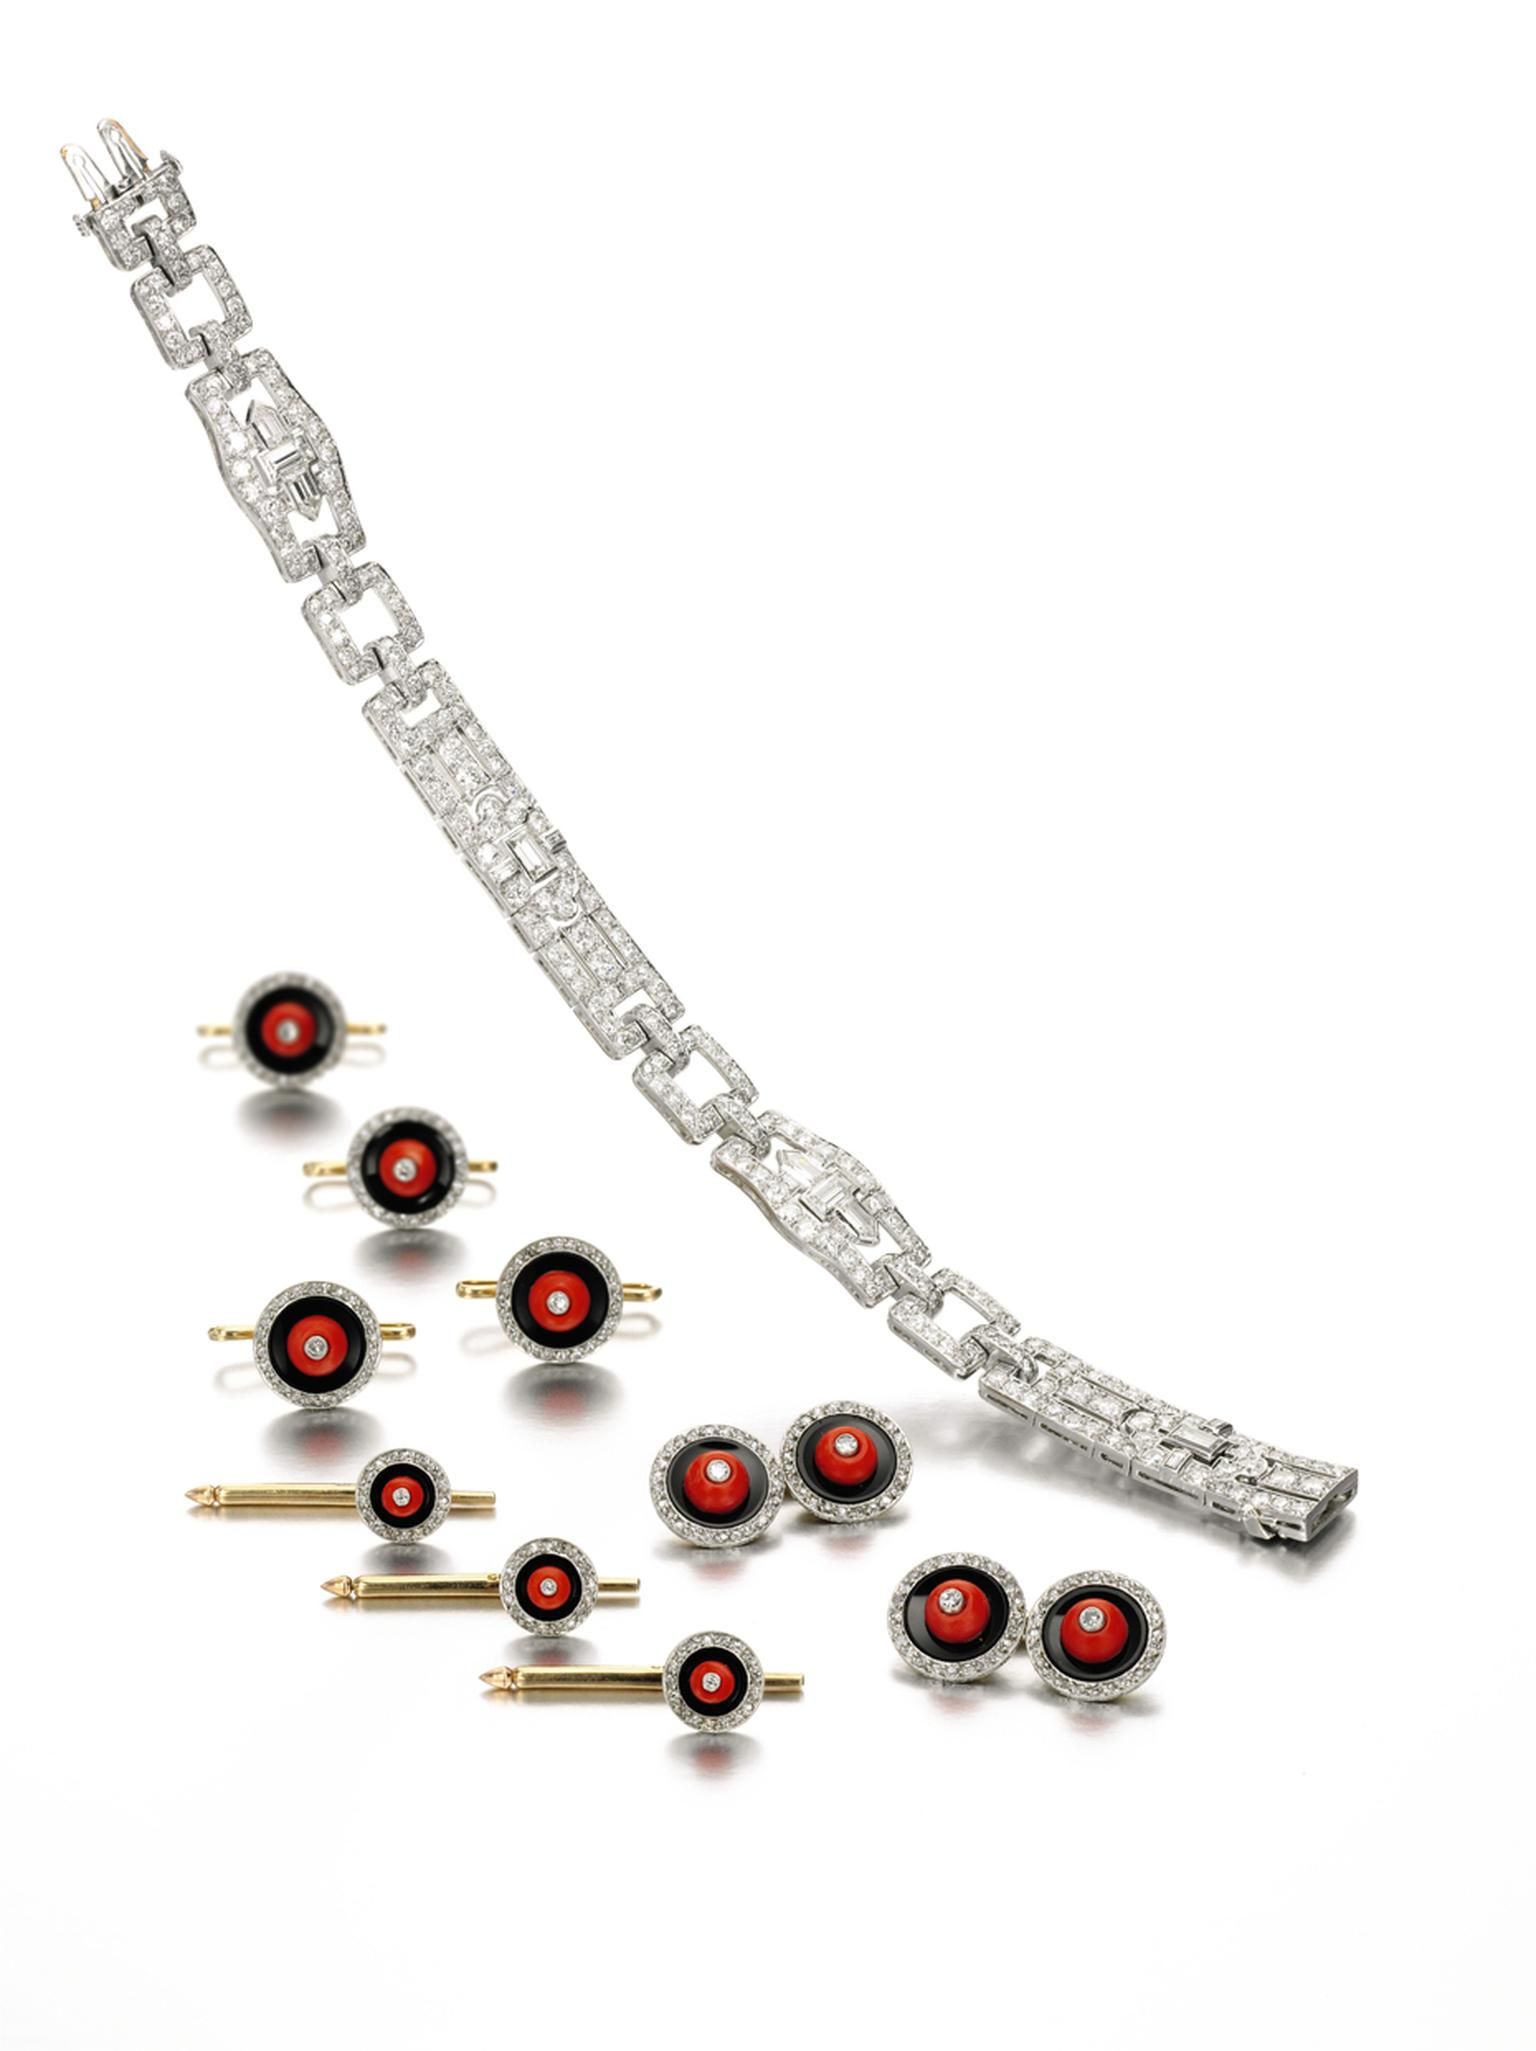 This Raymond Yard coral, onyx and diamond dress set sold for £13,750 and 1920s Cartier diamond bracelet sold for £31,250 at Sotheby's London in 2014.